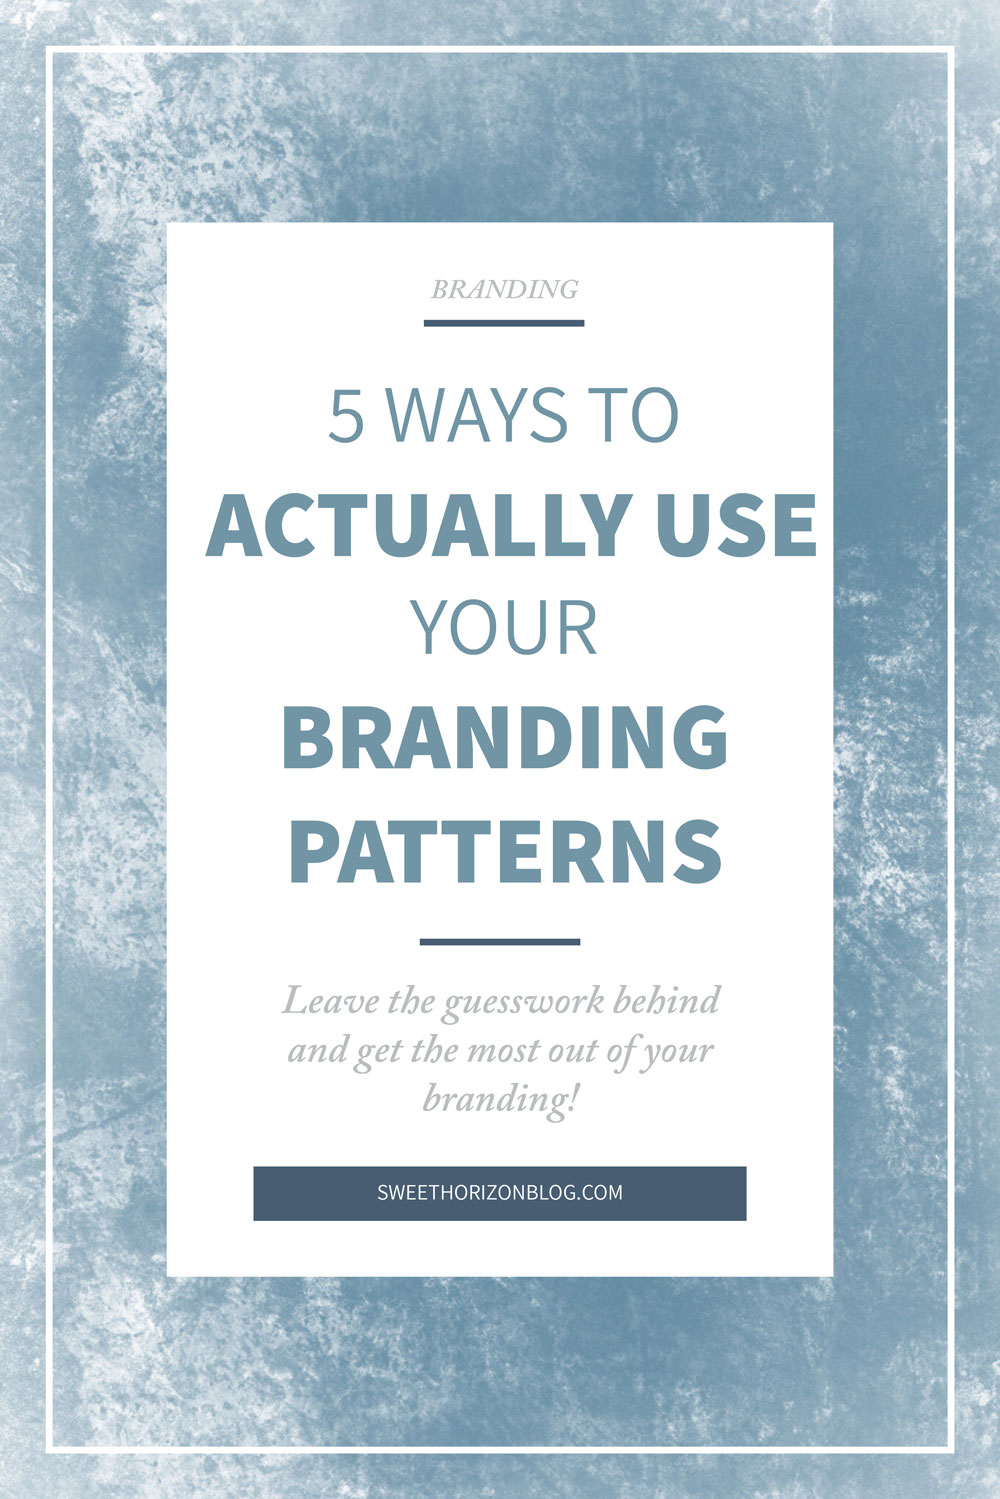 5 Ways to Actually Use Your Branding Patterns from www.sweethorizonblog.com